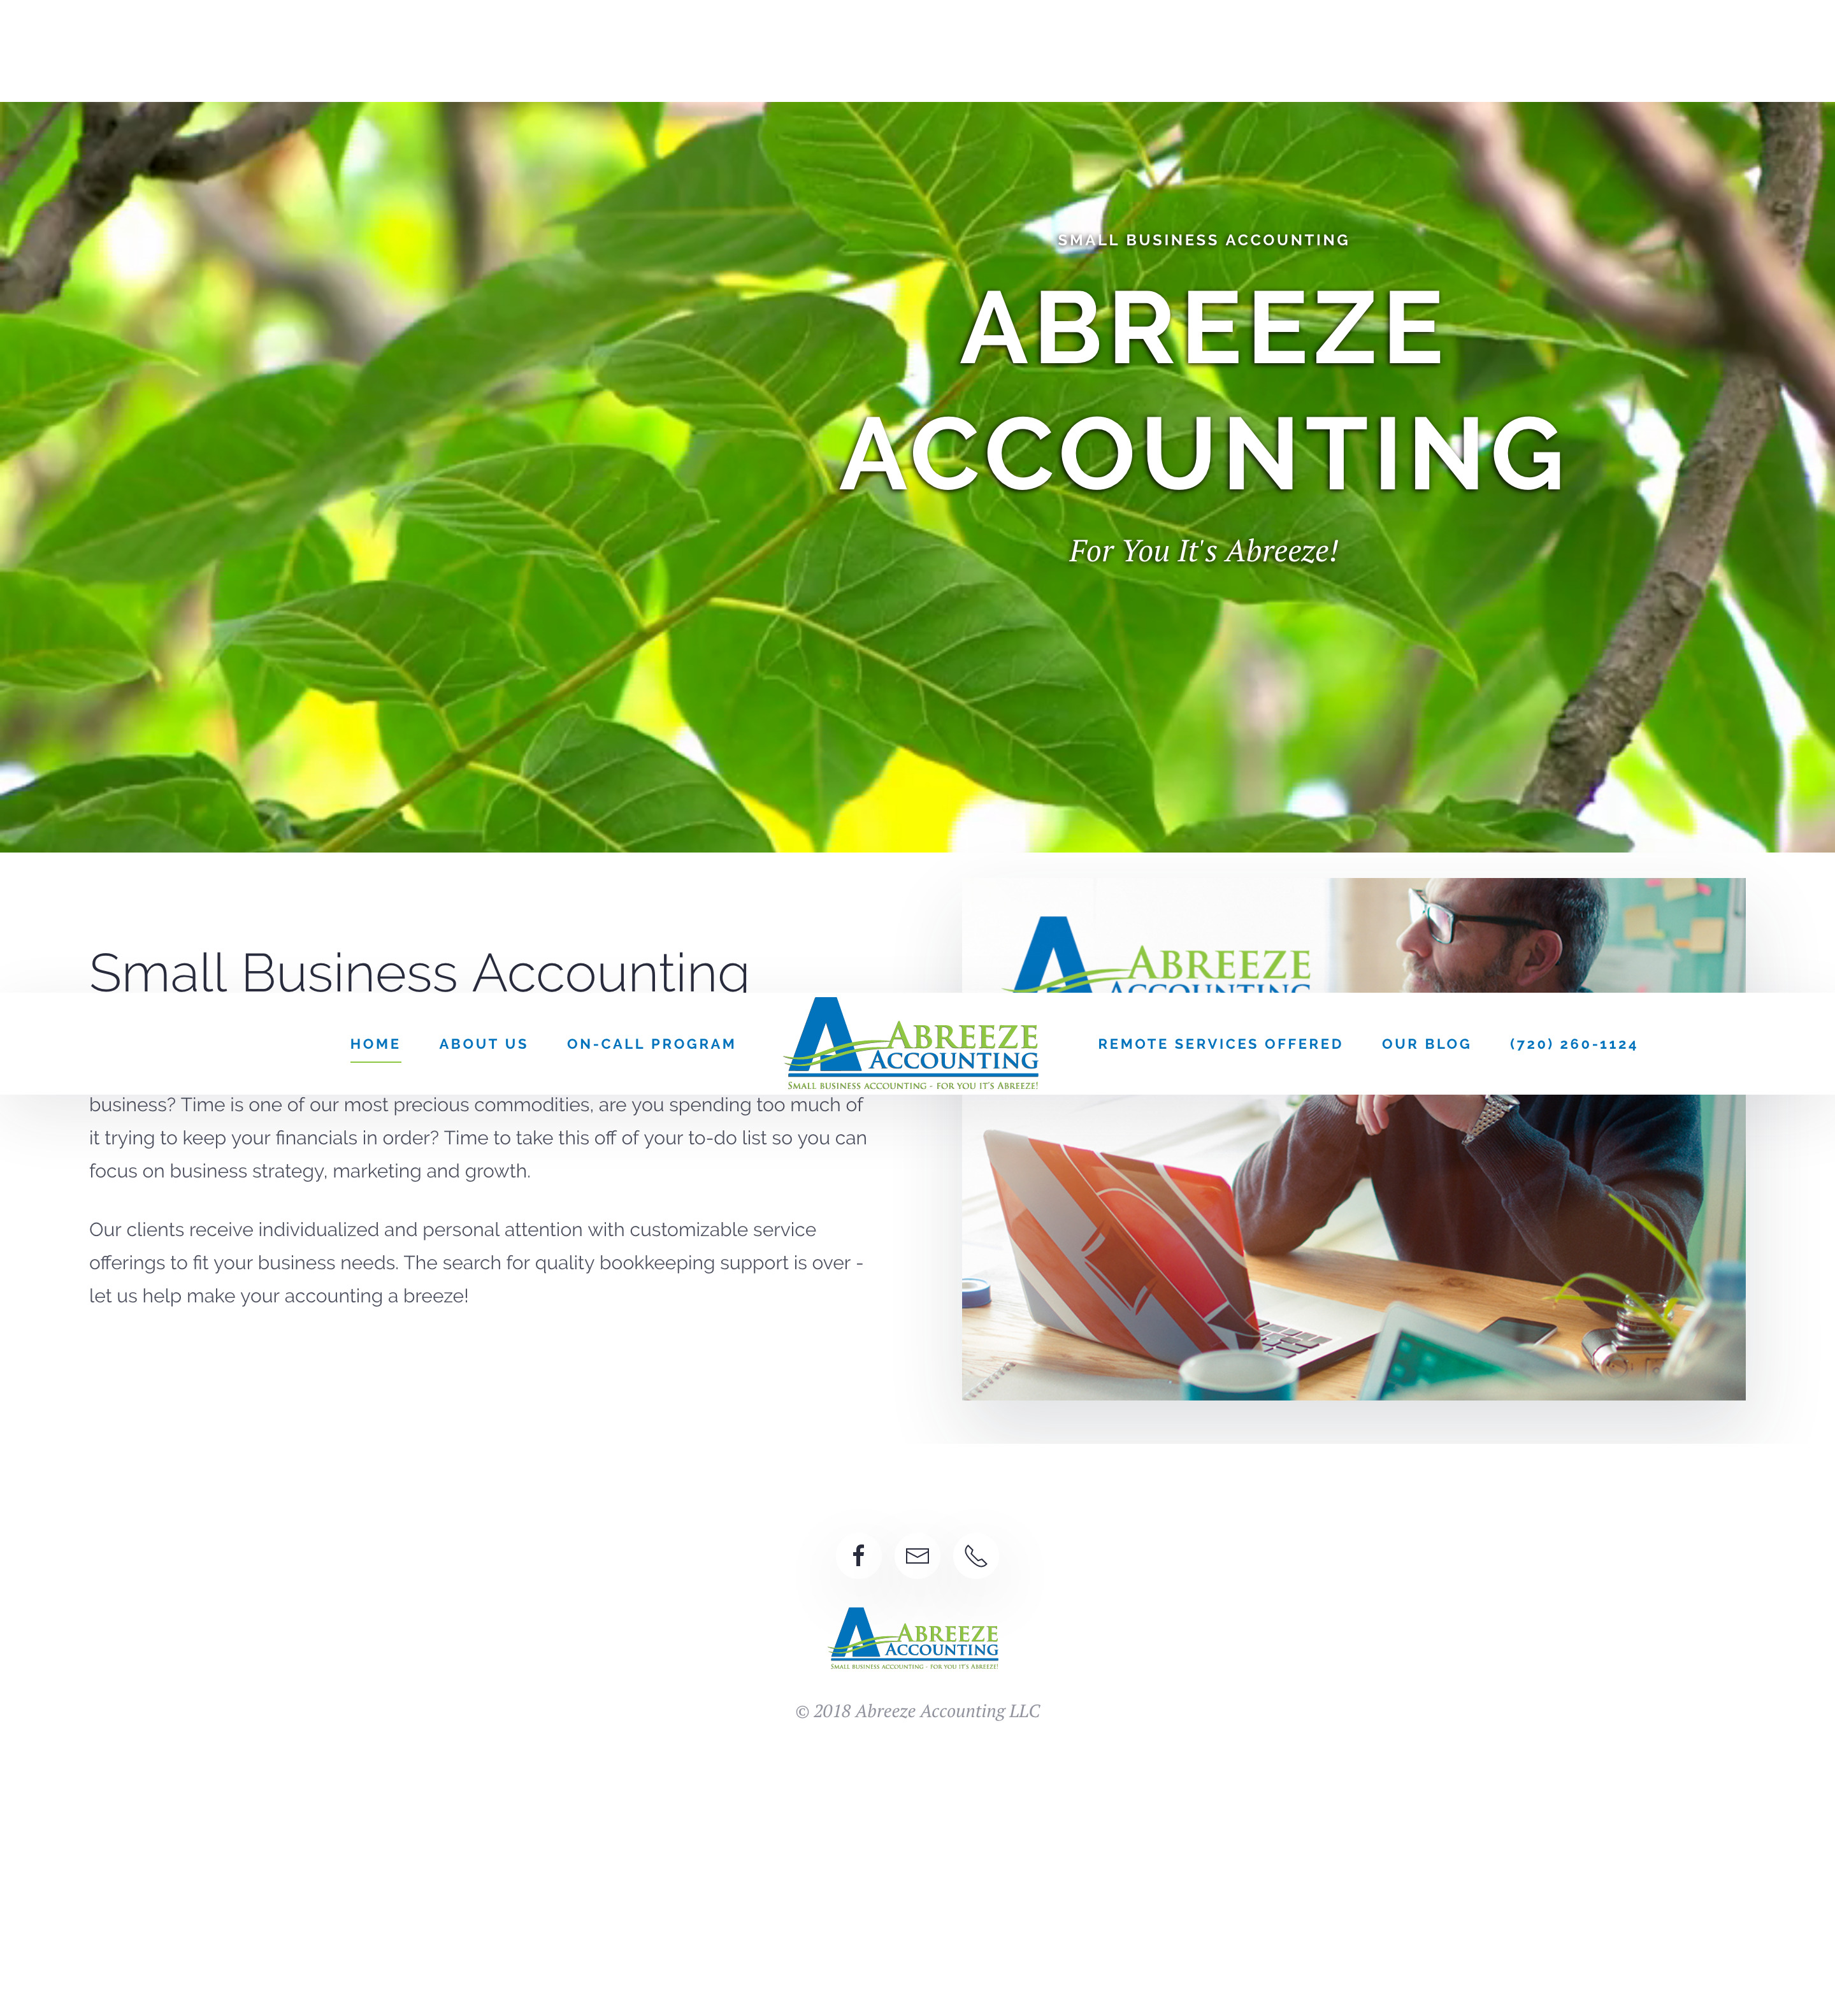 Abreeze Accounting